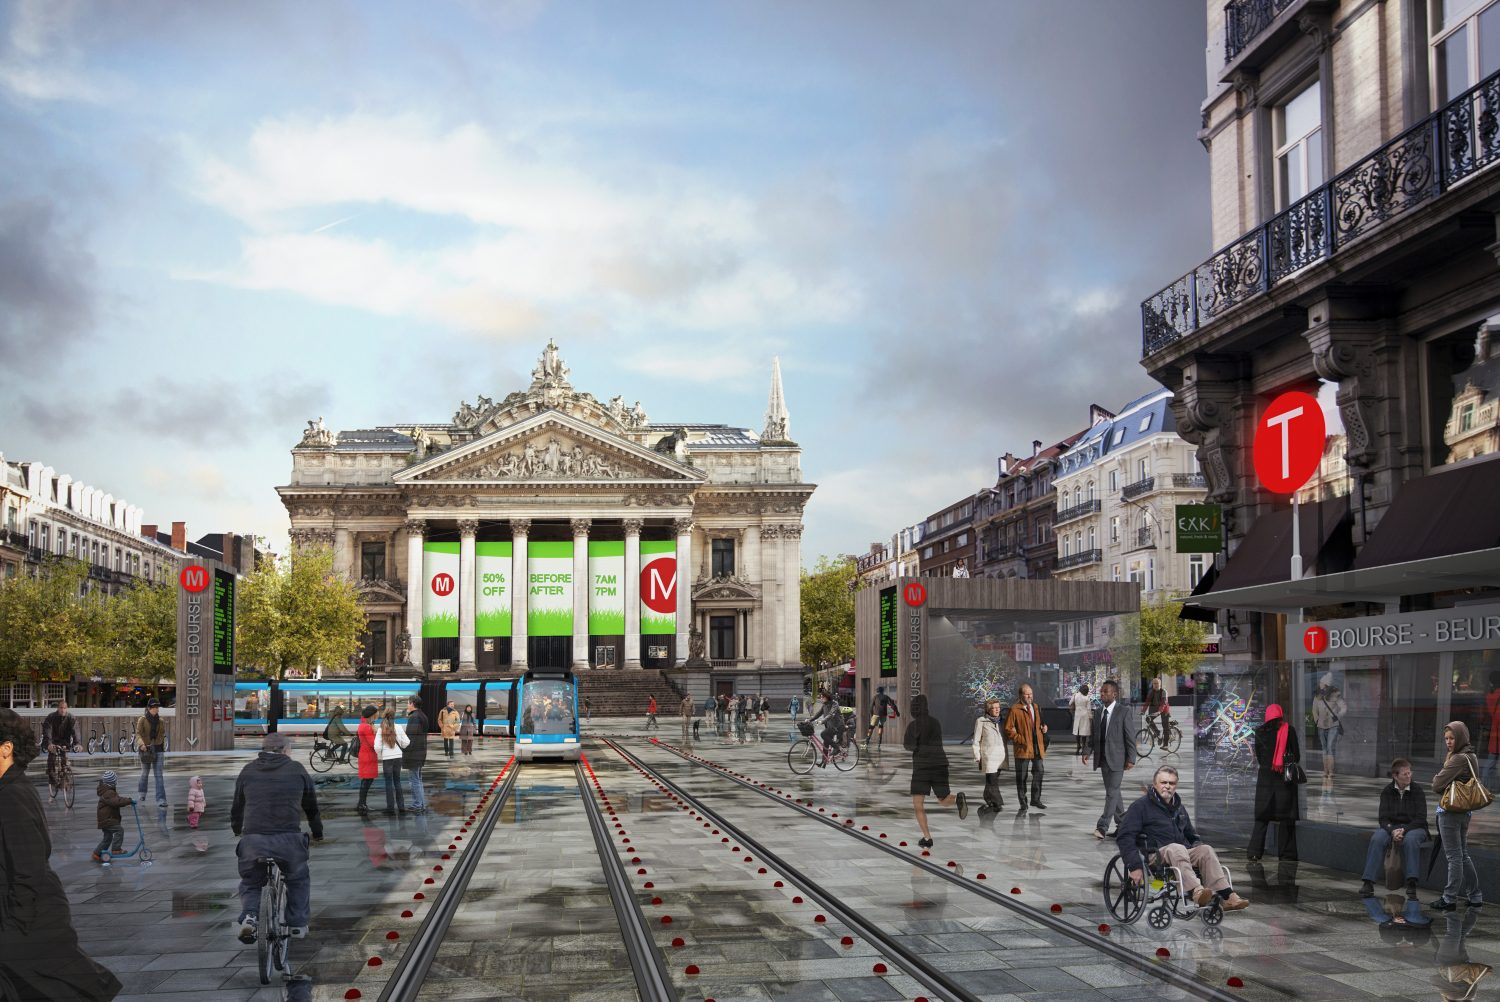 Bourse-Tram-©-Brussels-Smart-Mobility-scaled.jpg